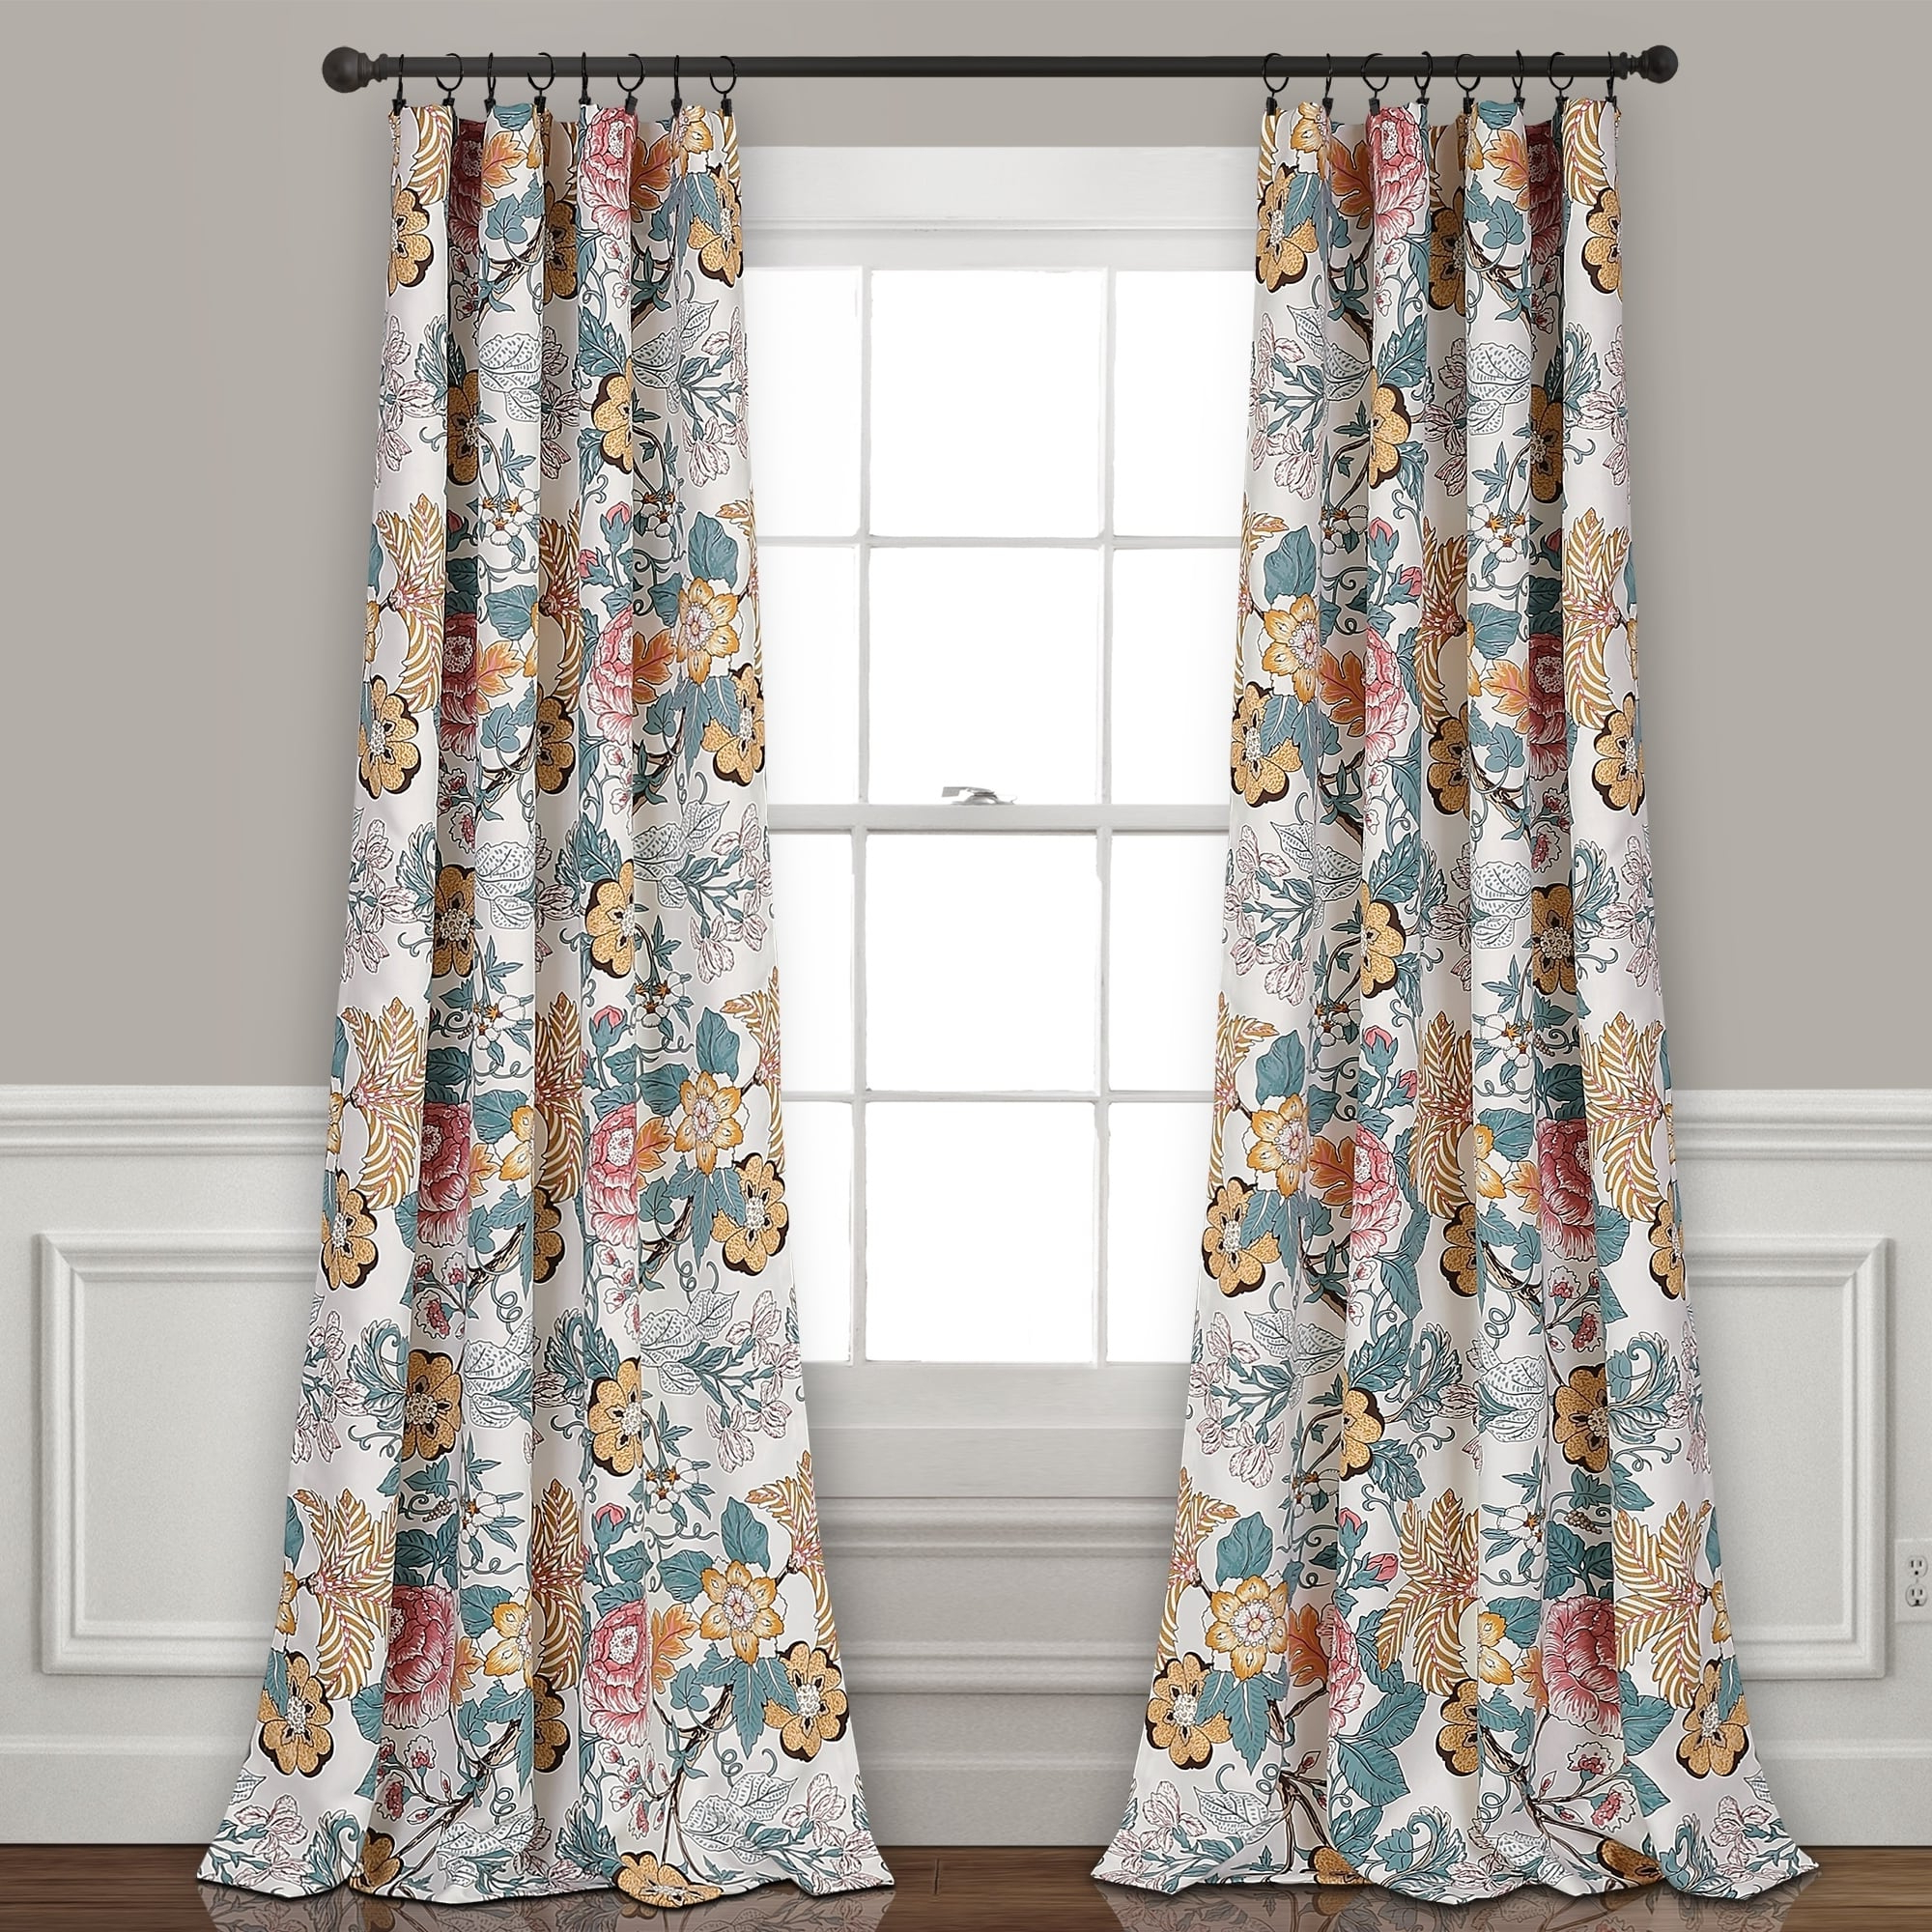 Newest Dolores Room Darkening Floral Curtain Panel Pairs With The Curated Nomad Chorro Room Darkening Curtain Panel Pair (View 17 of 20)